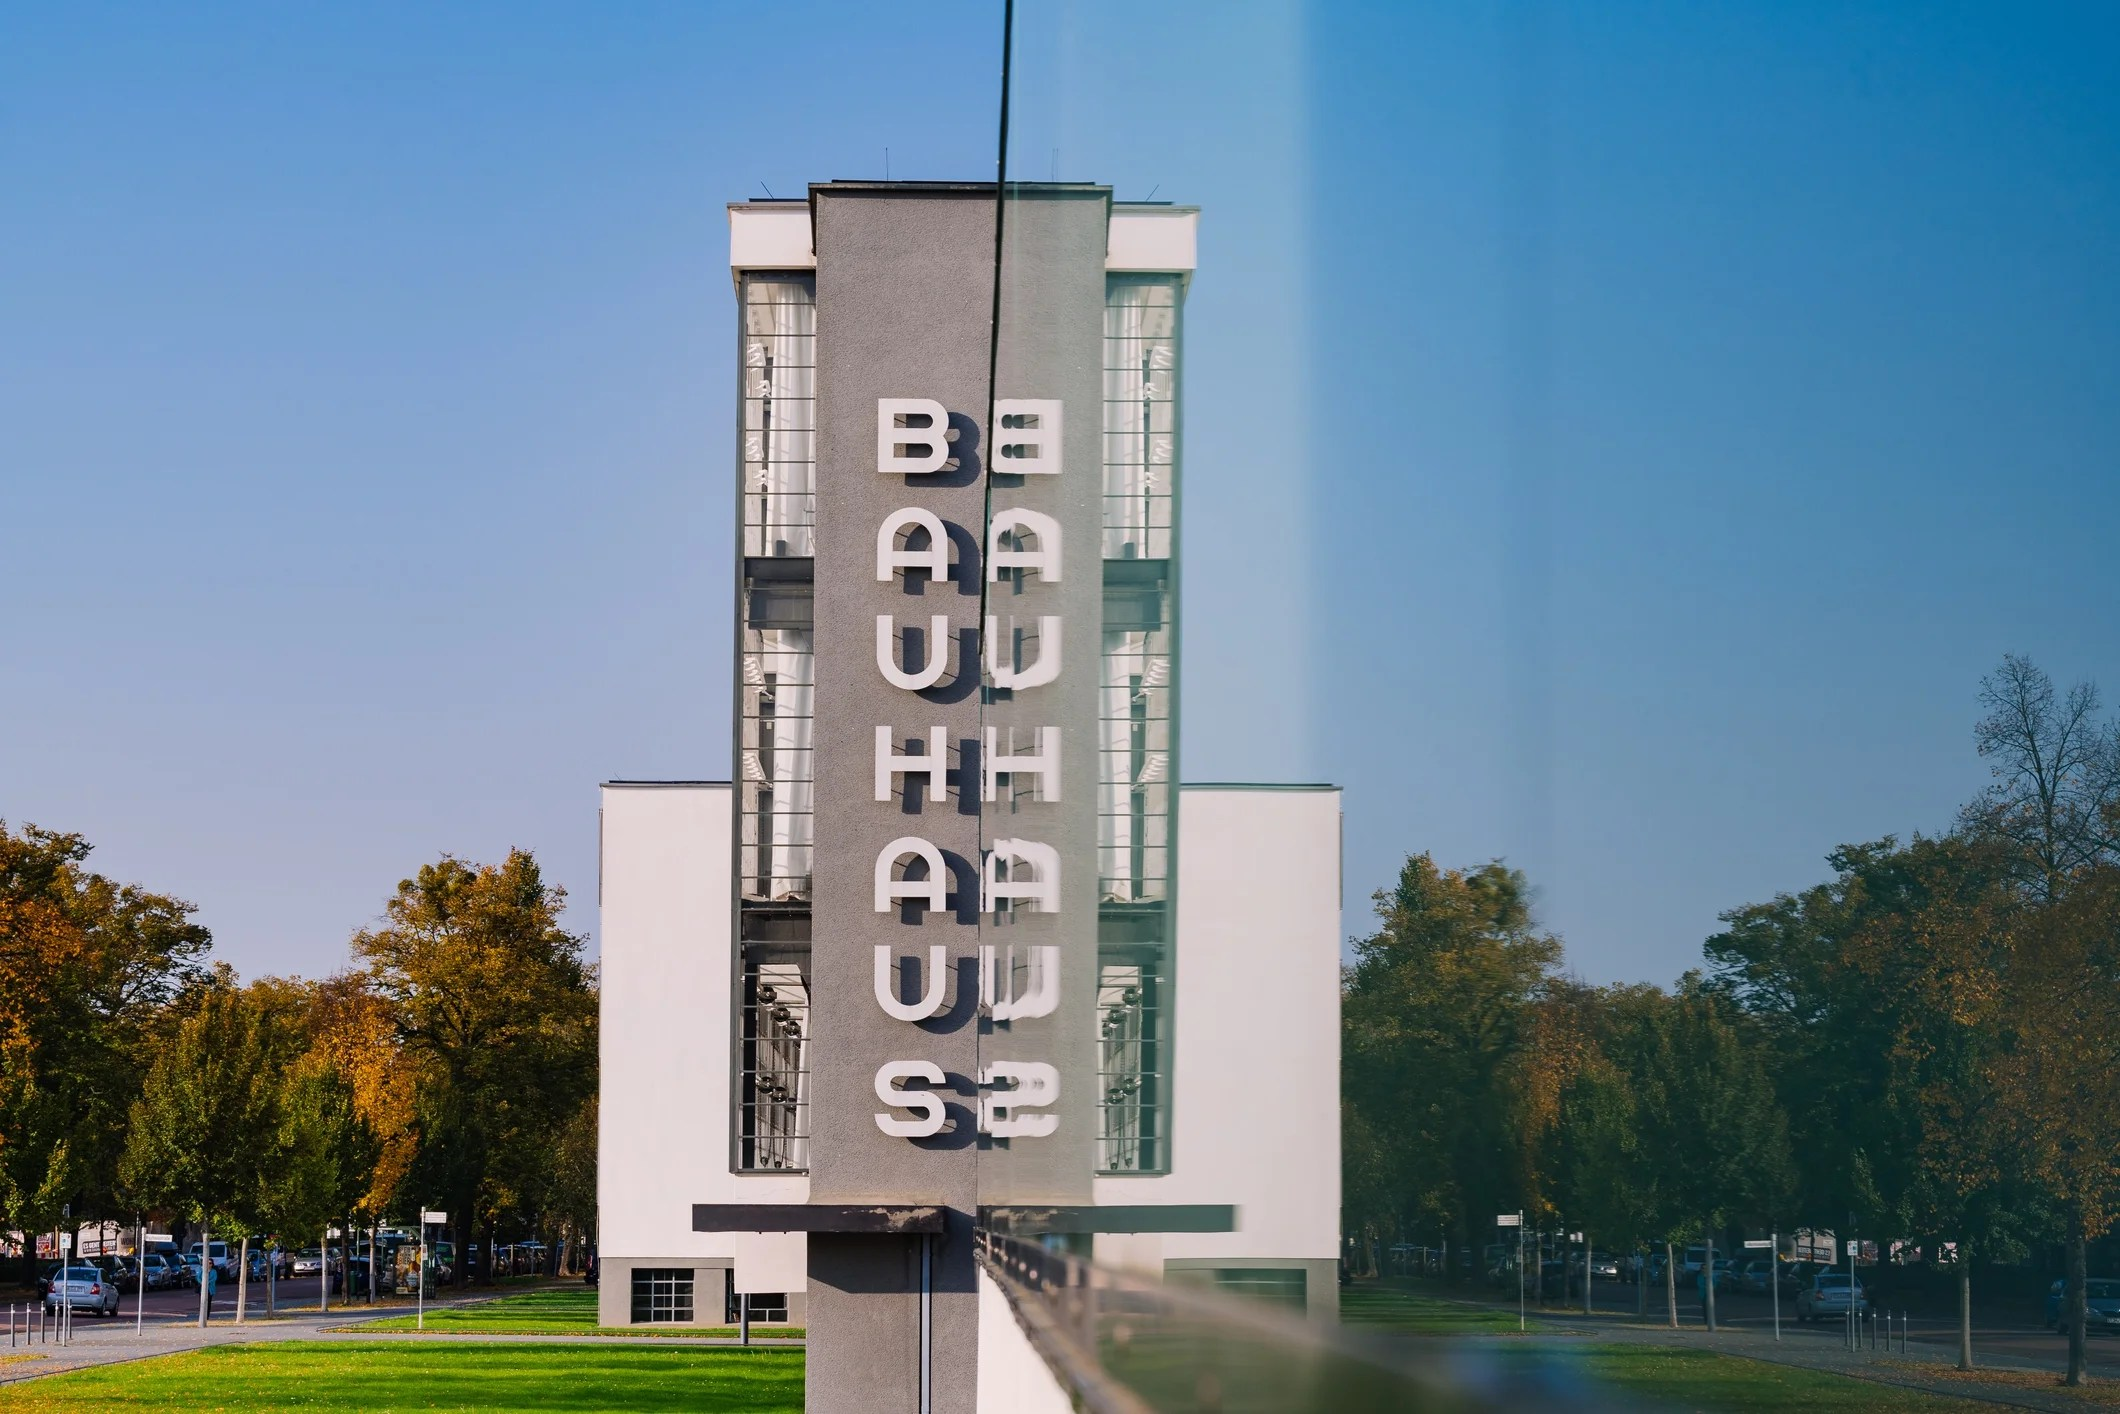 Bauhaus Kaminofen Bahia Netherlands Makes Trains Free On National Book Day For Those Who